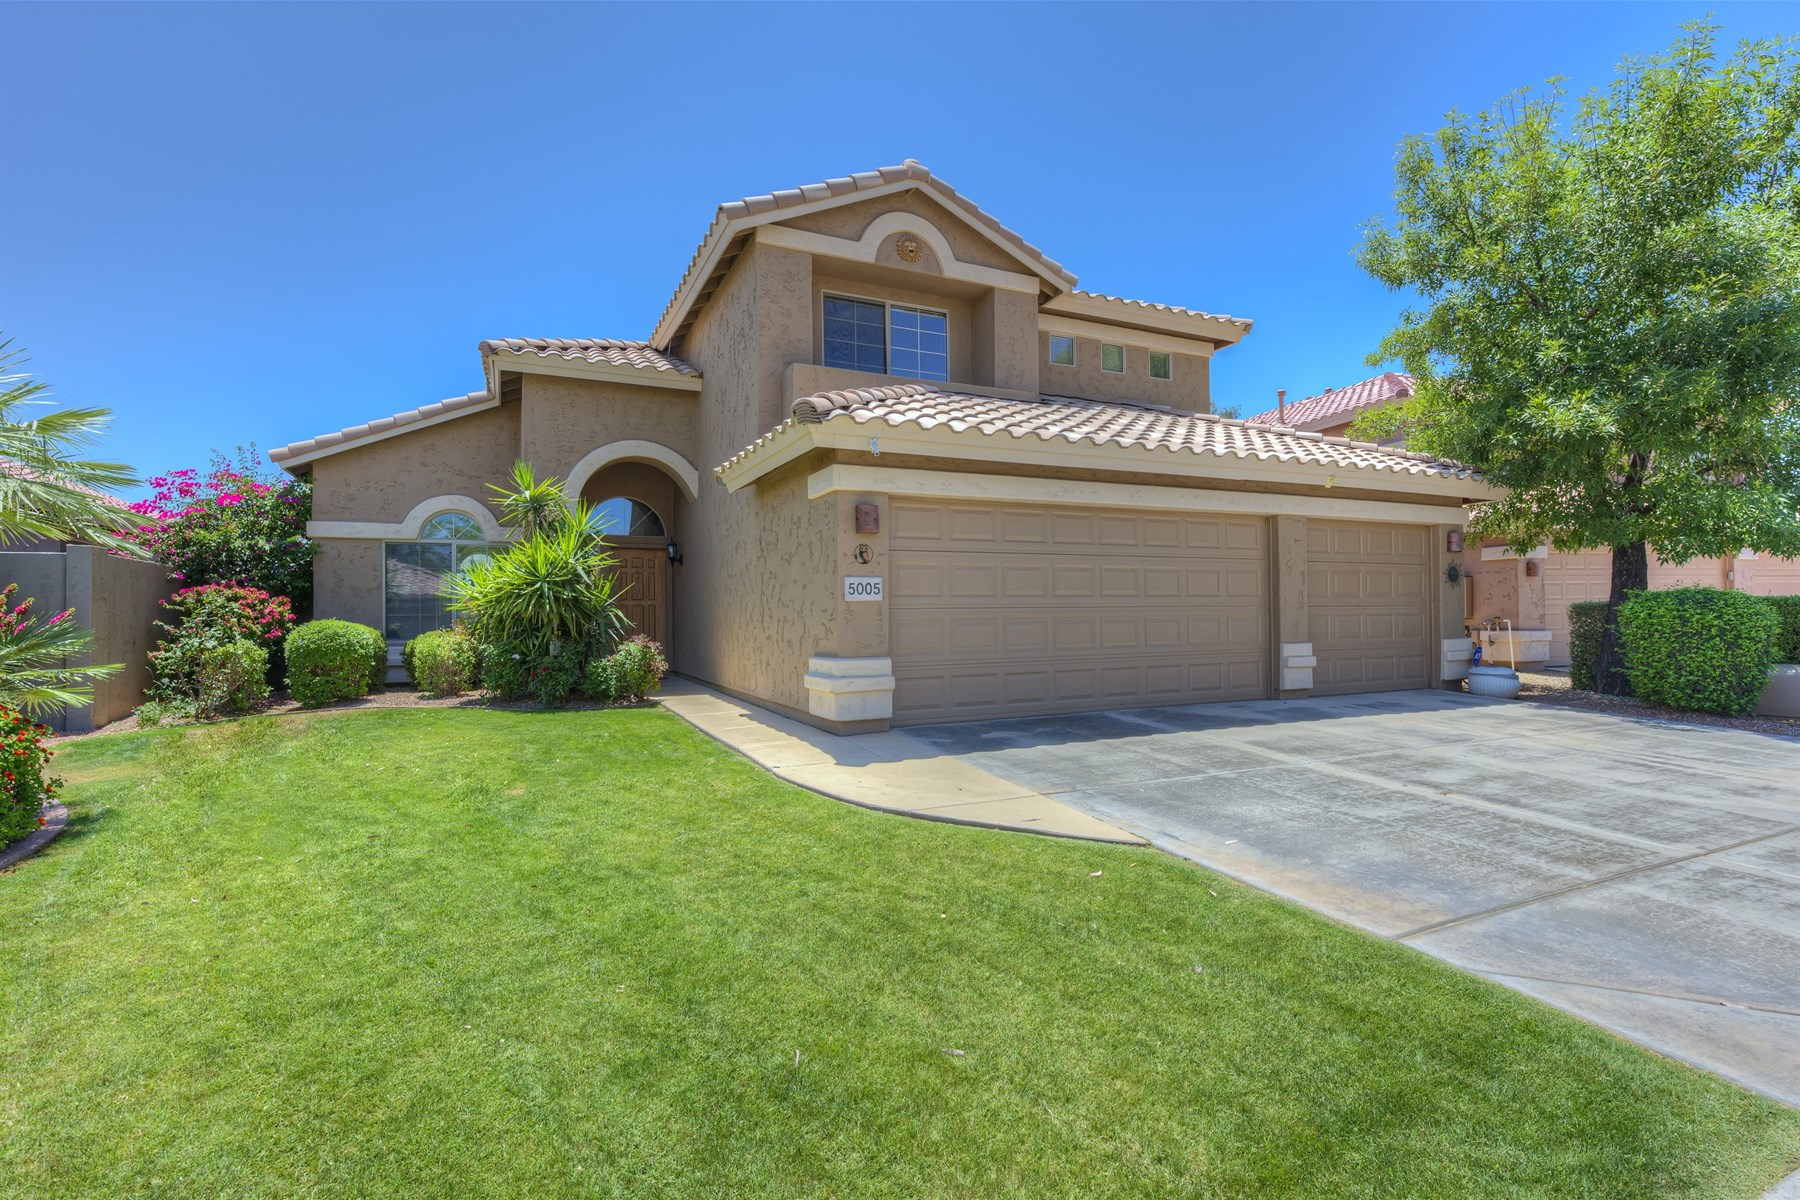 Single Family Home for Sale at Fabulous remodeled home in Triple Crown Subdivision 5005 E Libby St Scottsdale, Arizona, 85254 United States